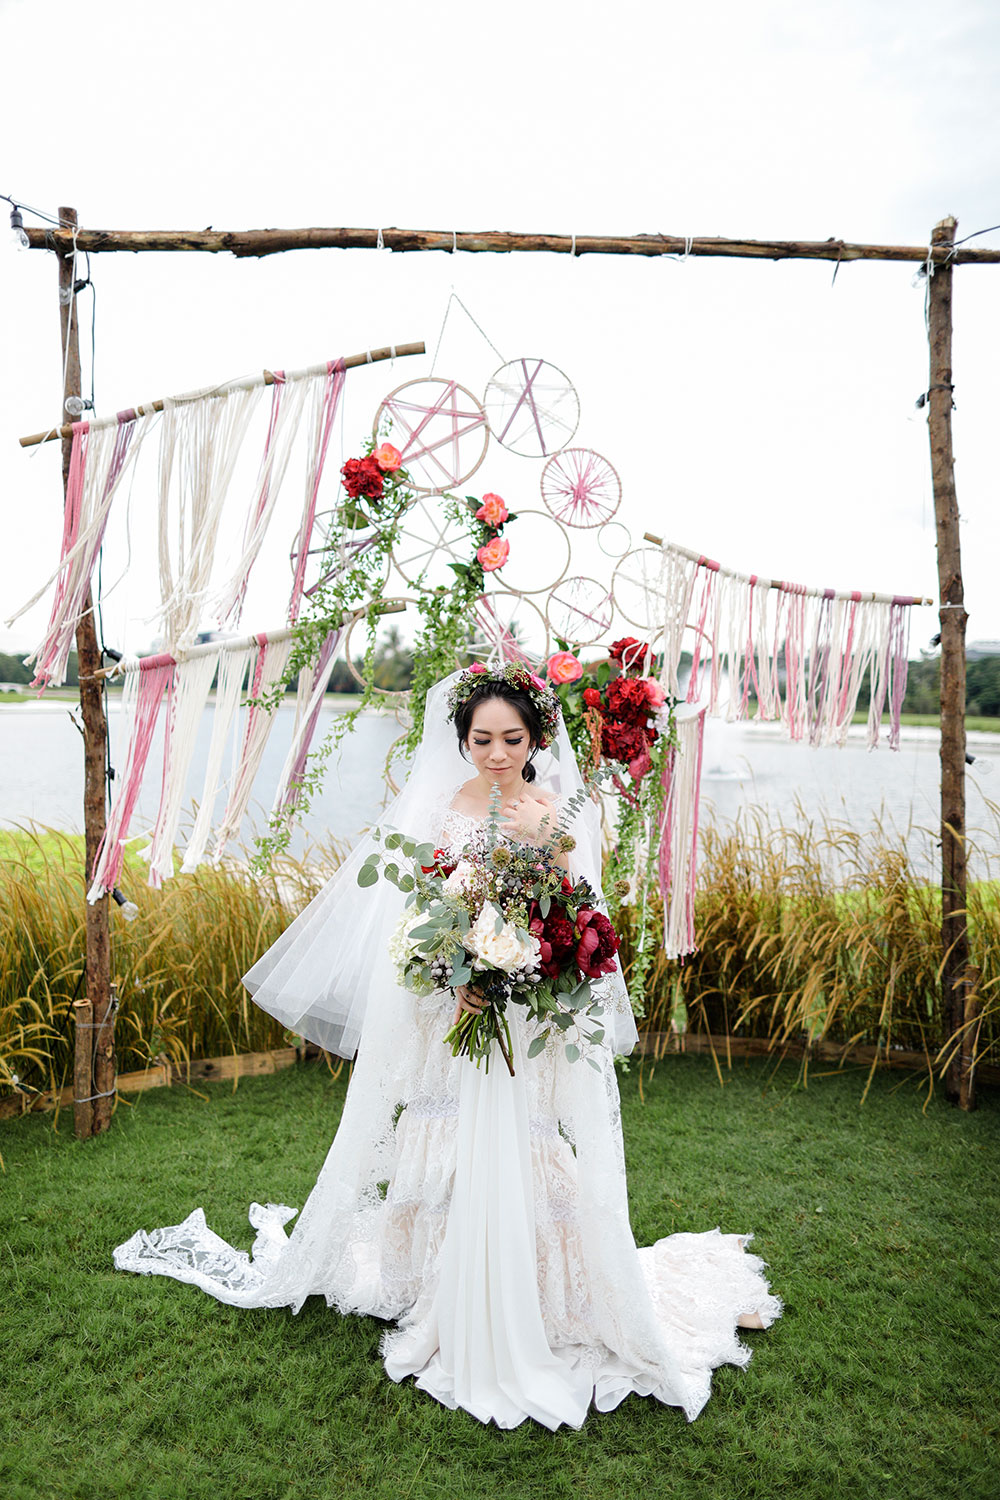 Photo by Axioo. ttp://www.theweddingnotebook.com